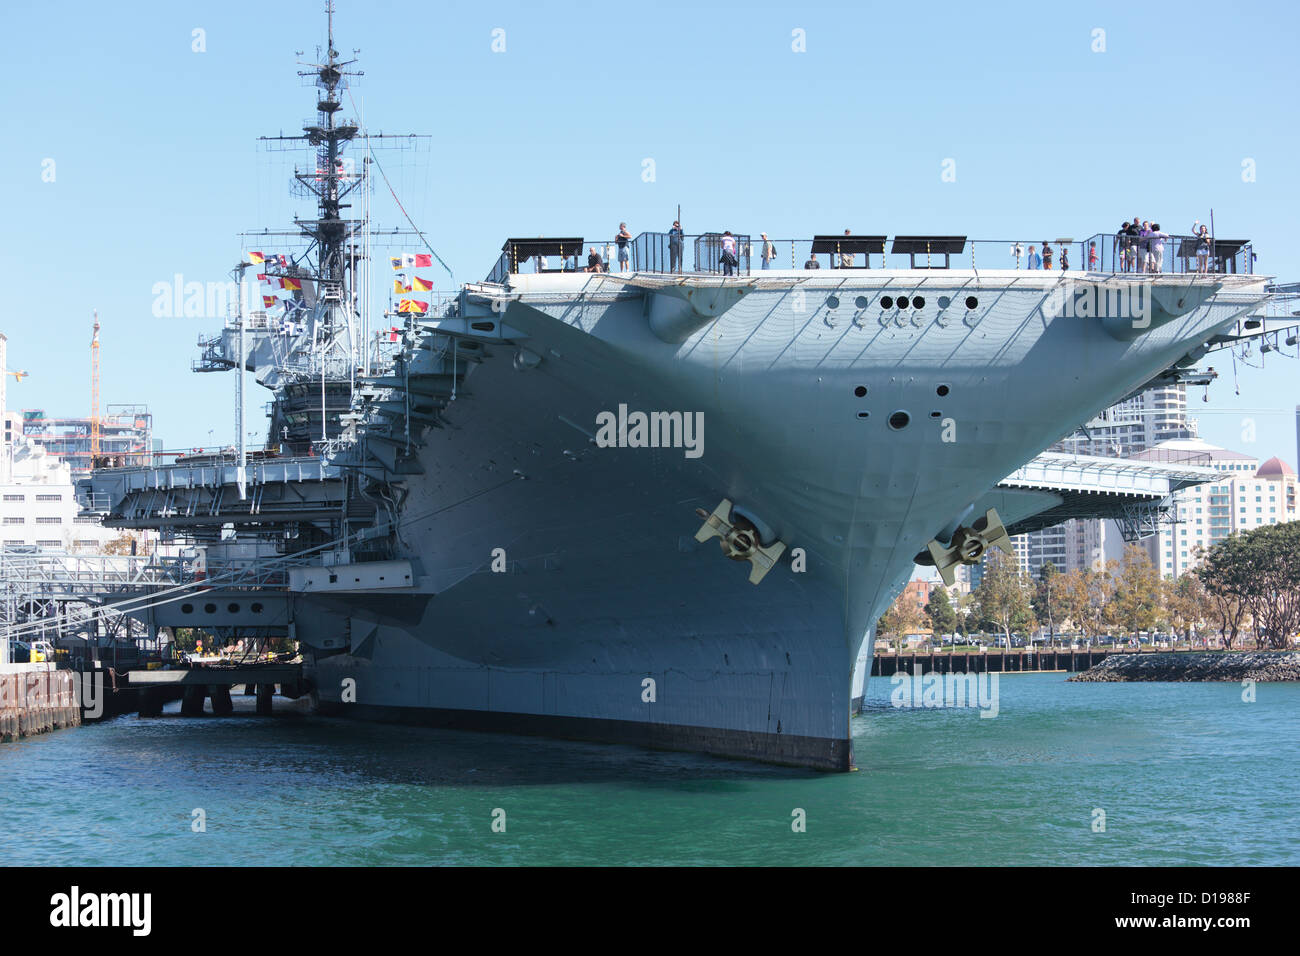 USS Midway aircraft carrier in San Diego, California, USA. - Stock Image